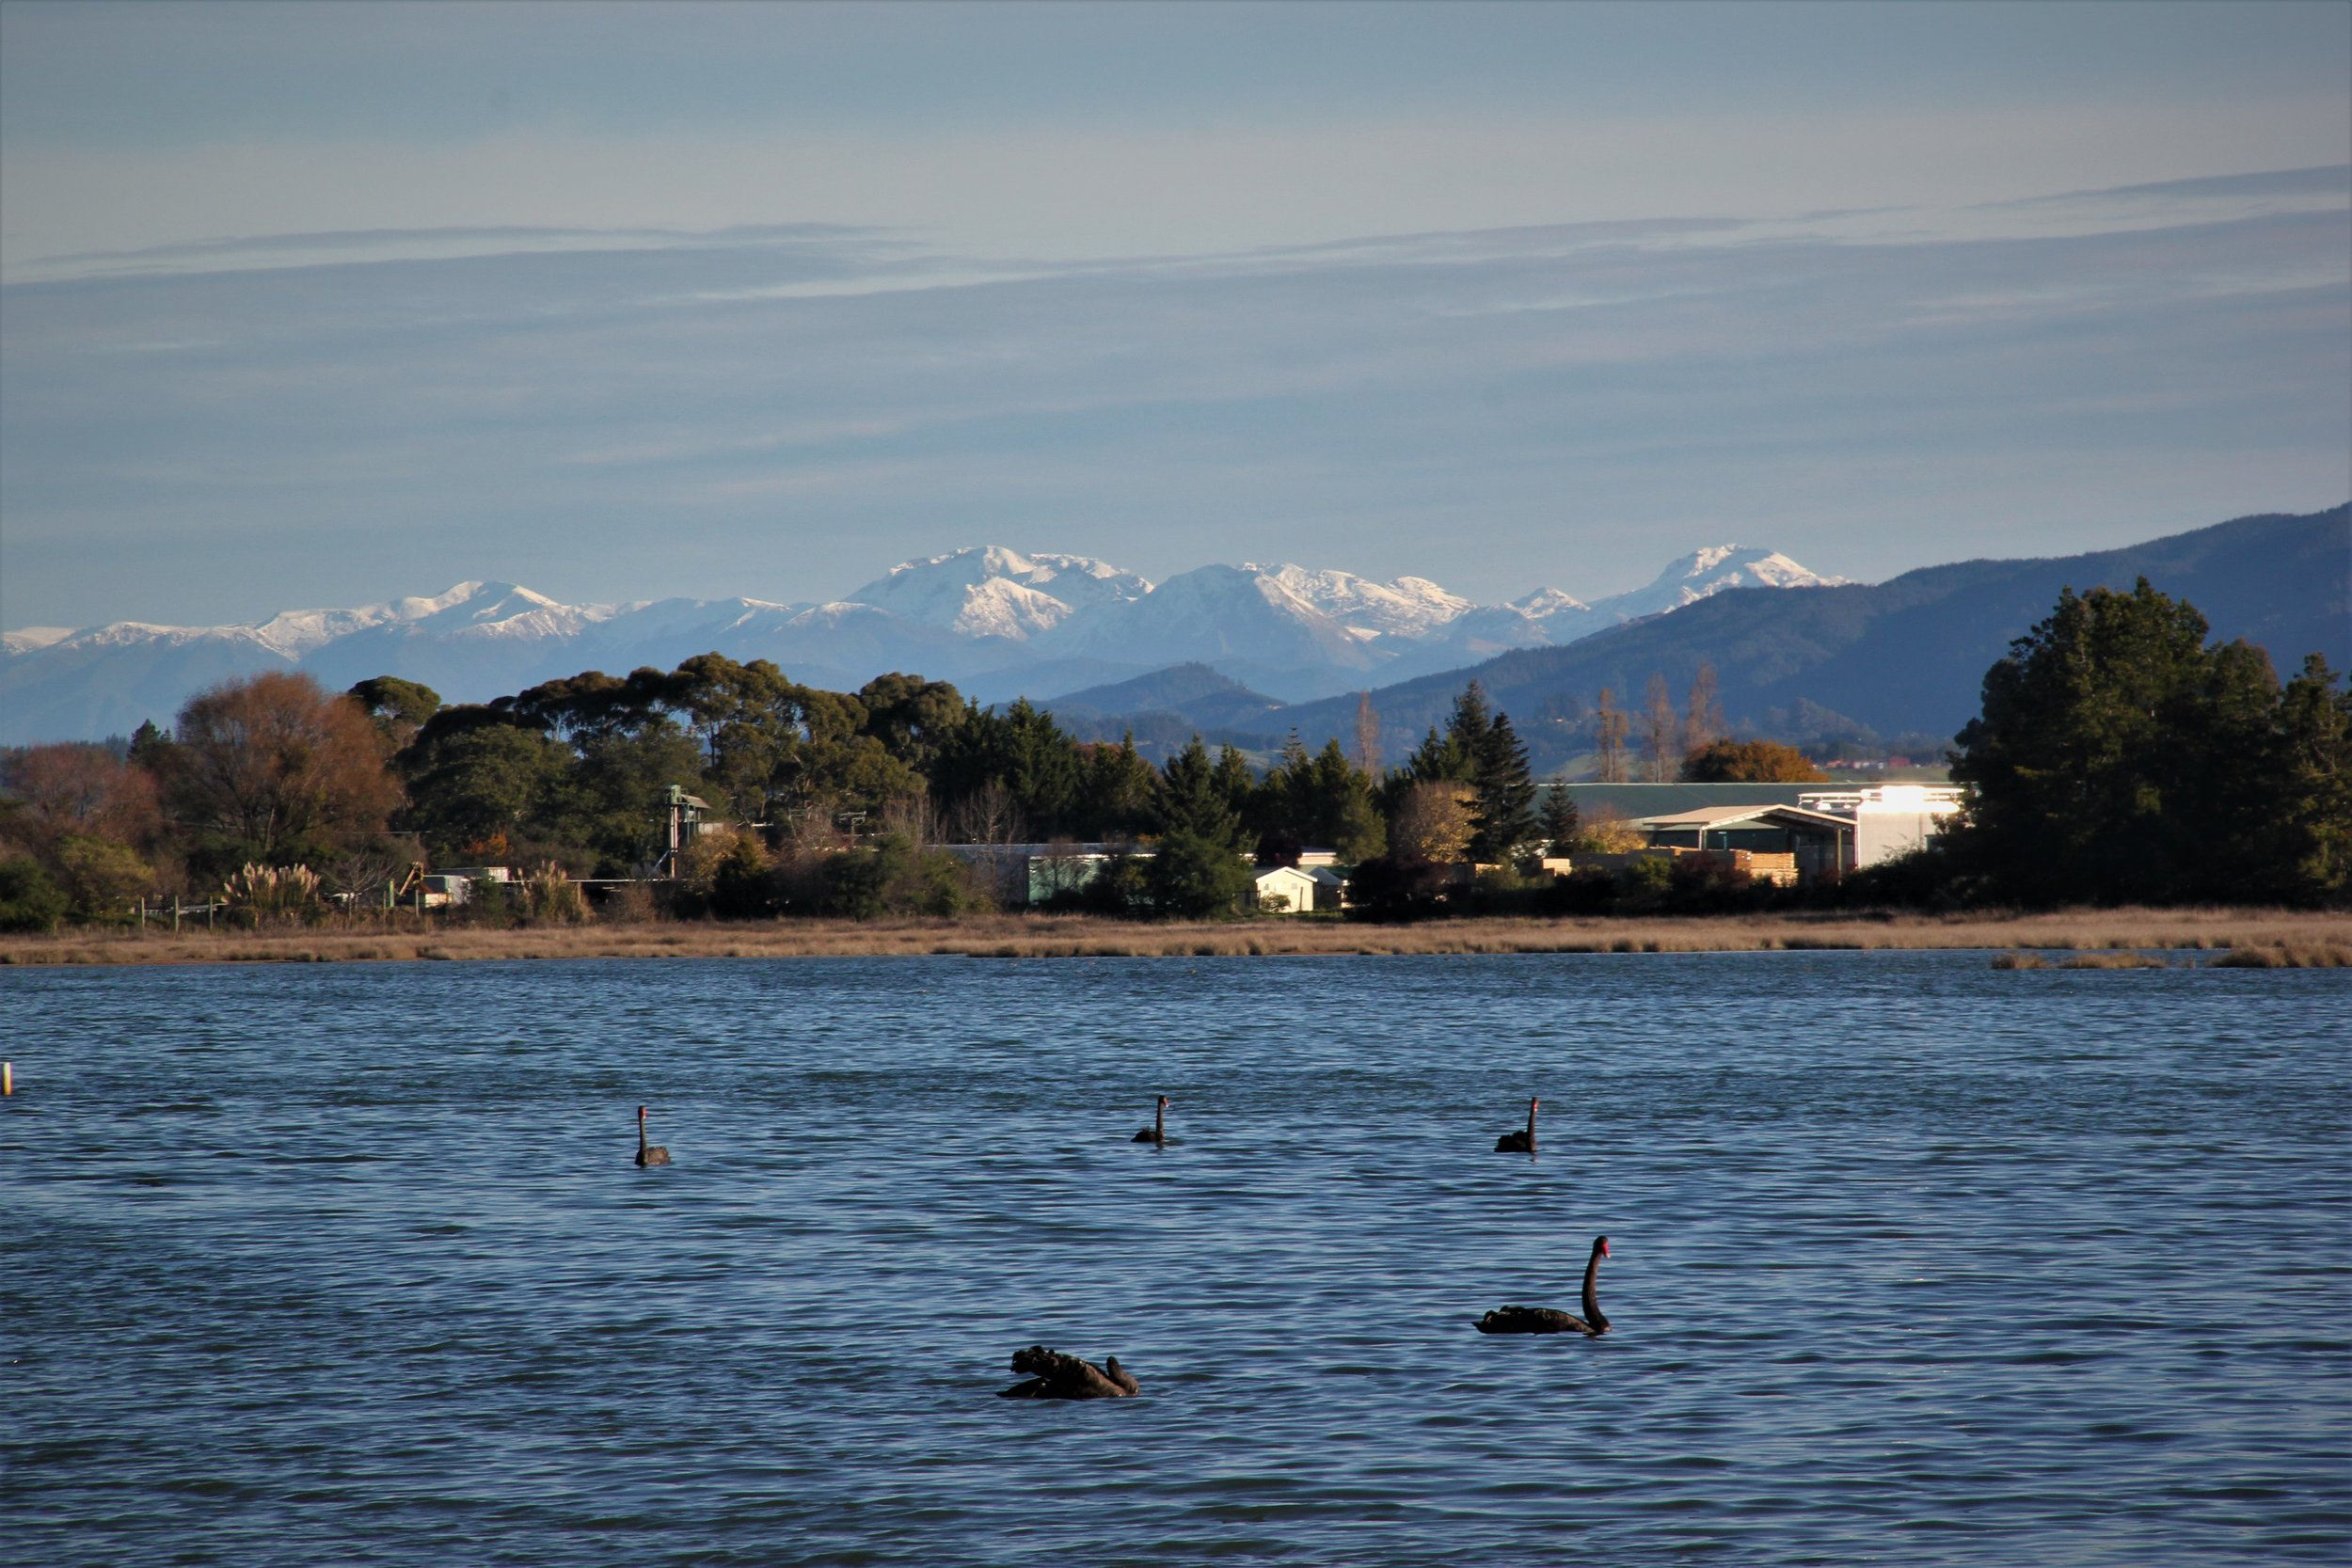 Looking South west over the Motueka Estuary to the Marino mountains.